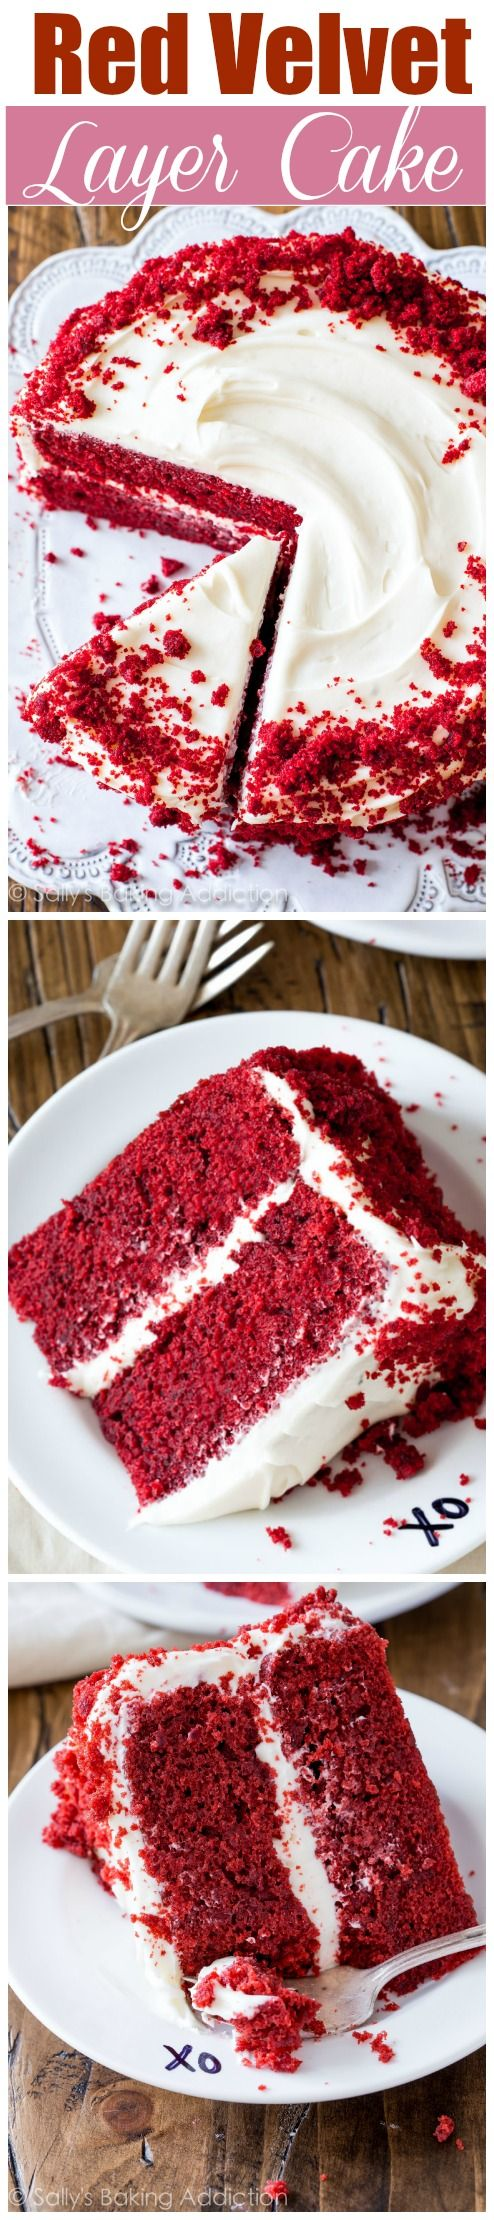 Food Network Red Velvet Cake With Cream Cheese Frosting